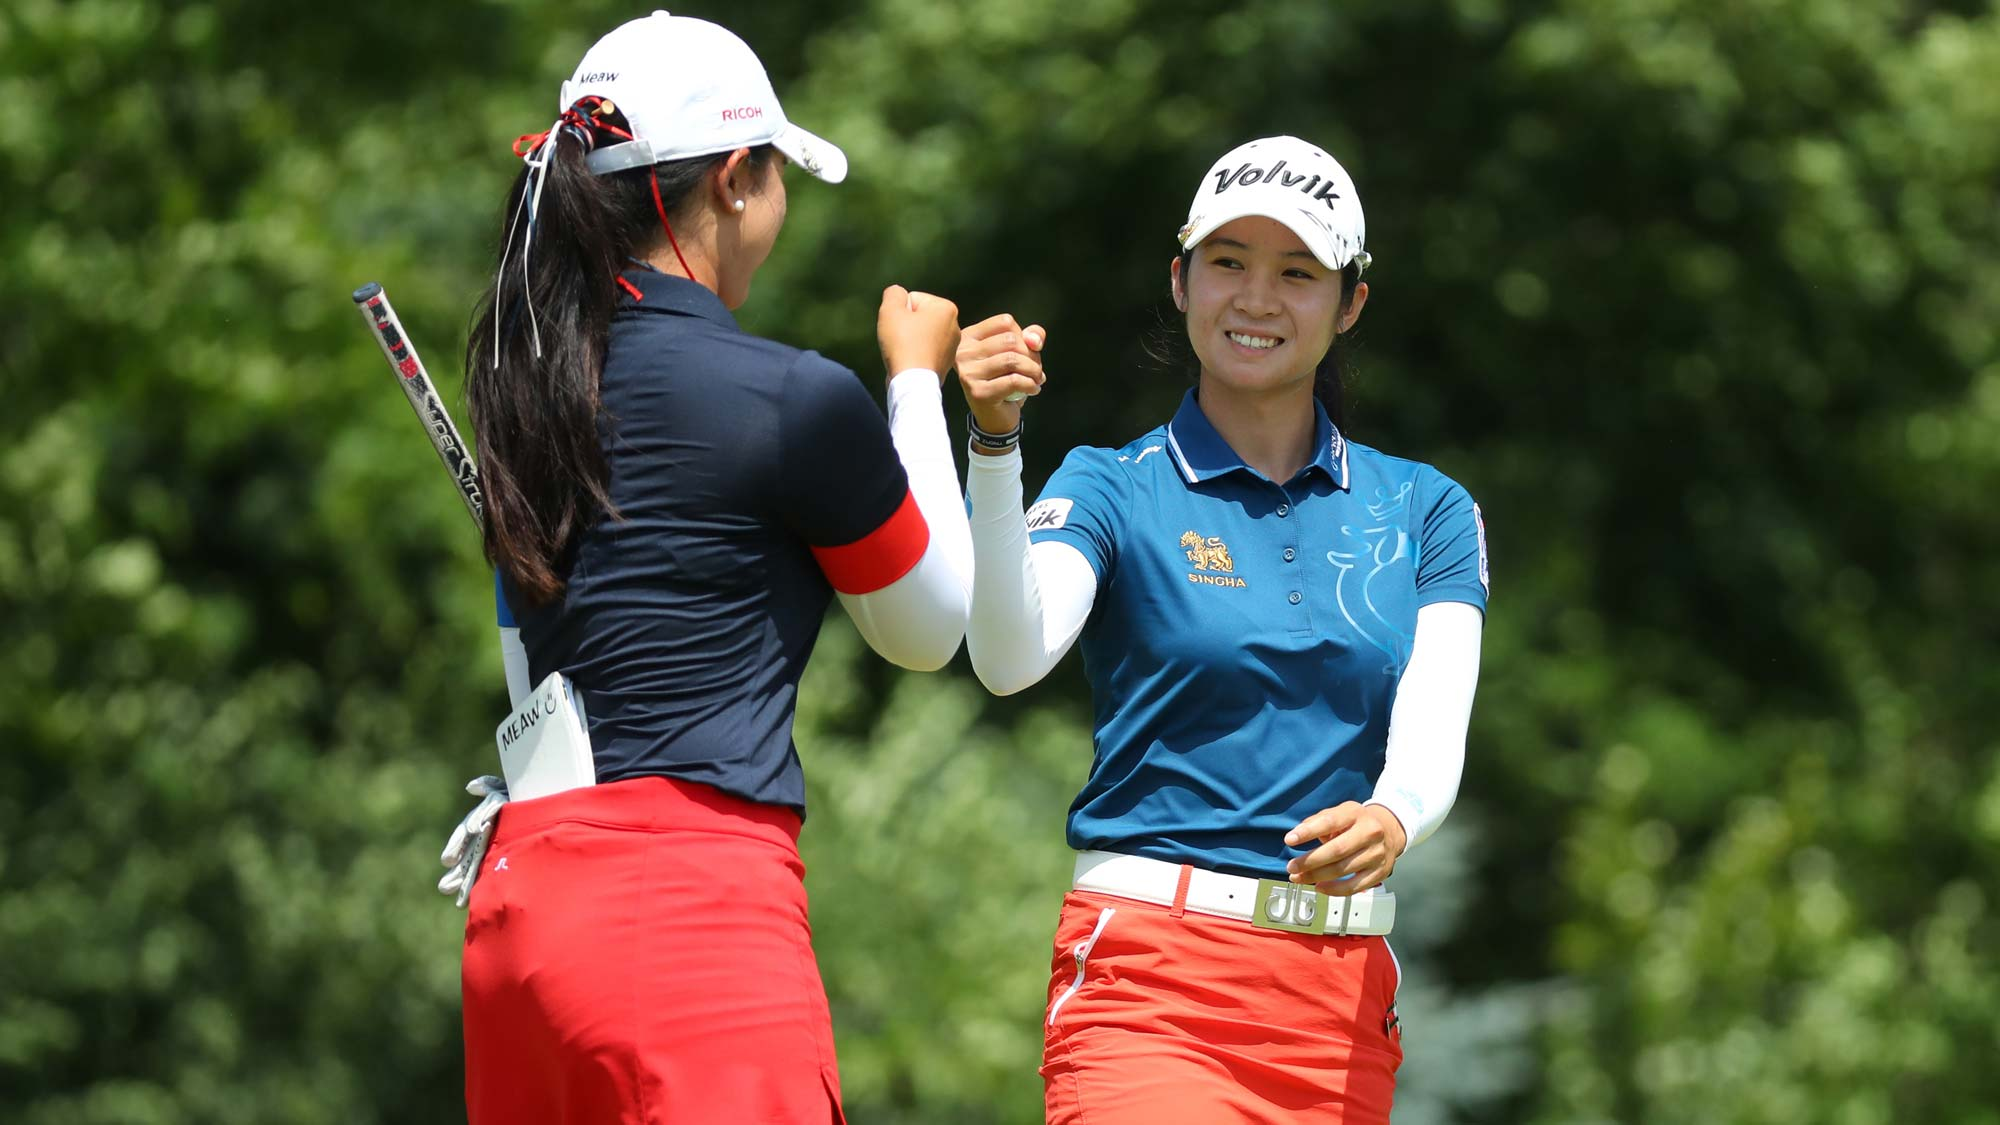 Teammates Pajaree Anannarukarn (L) and Pannarat Thanapolboonyaras of Thailand celebrate on the sixth green during round three of the Dow Great Lakes Bay Invitational